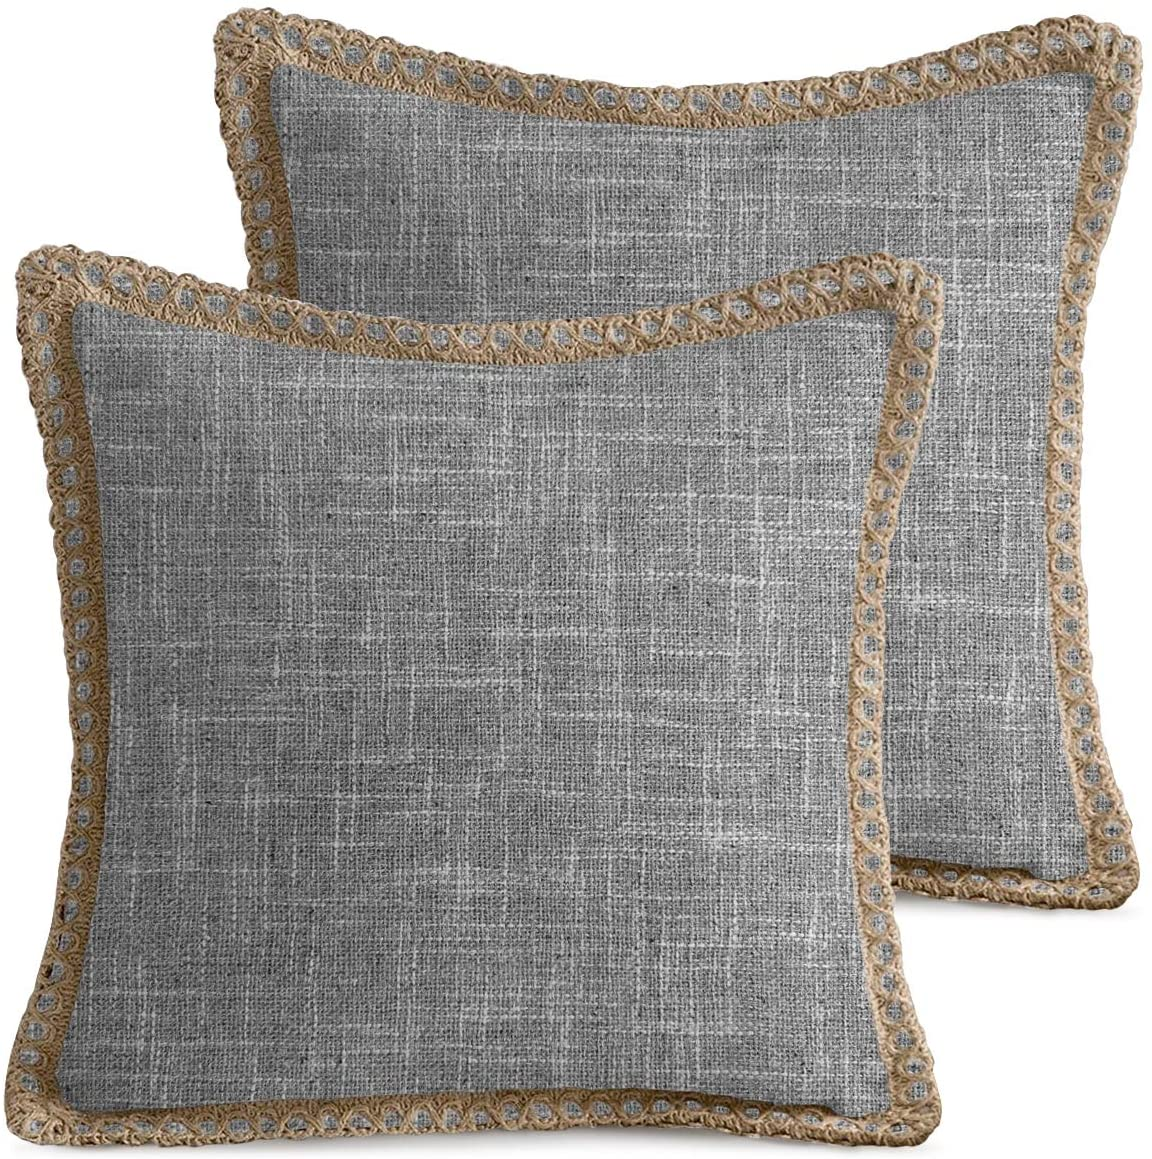 AVOIN Trimmed Edge Throw Pillow Cover, 18 x 18 Inch Farmhouse Decorative Cushion Case for Sofa Couch Grey Pack of 2